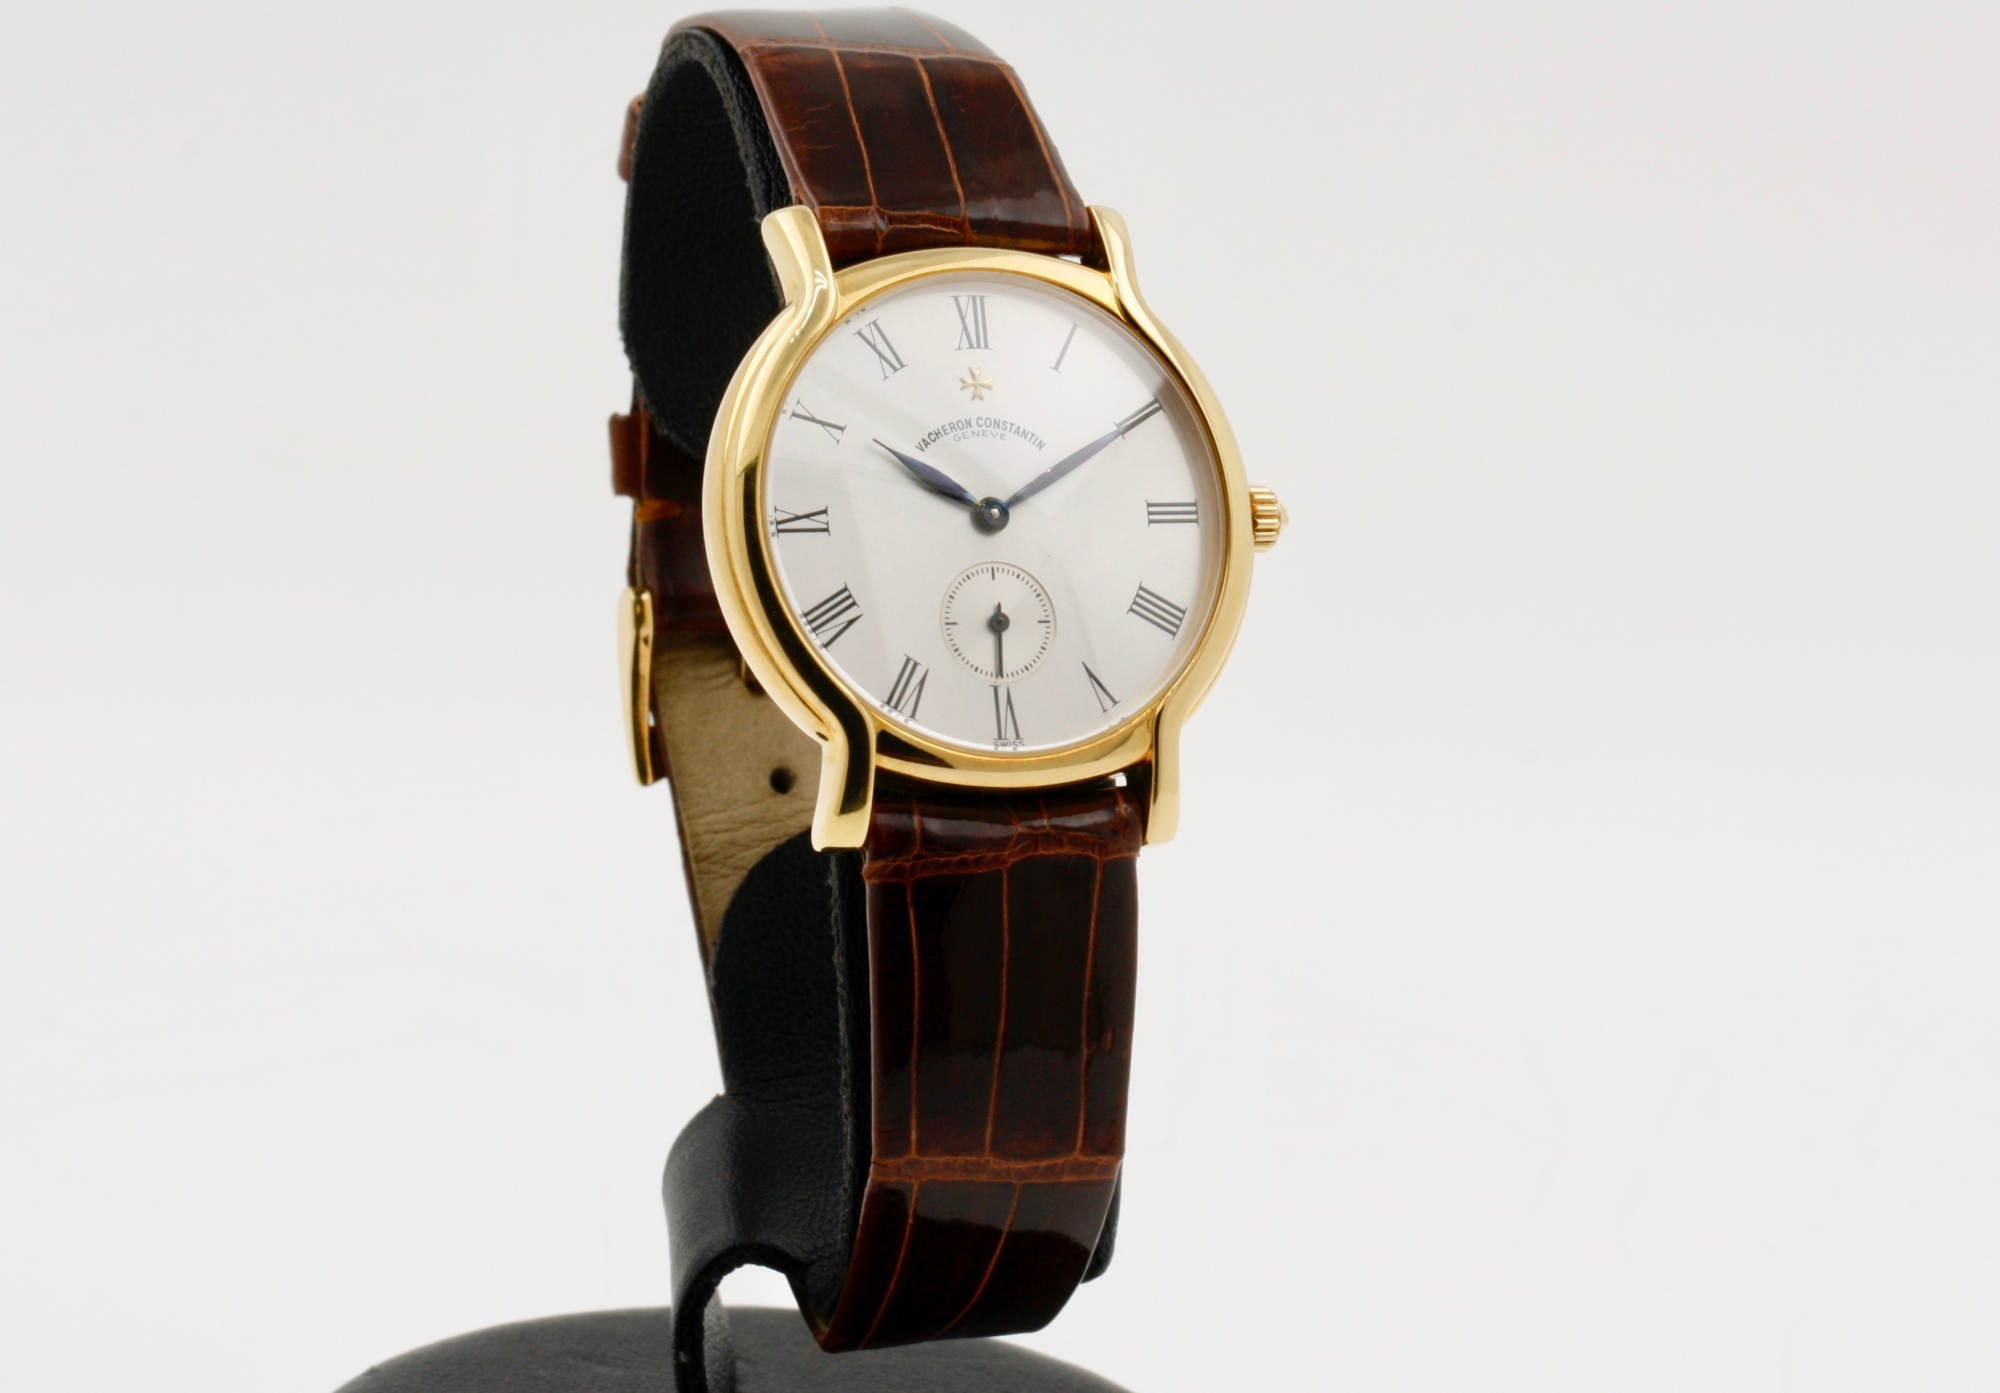 Vacheron Constantin Les historiques small seconds - Box and papers - As NEW 92060/000J-4 1997